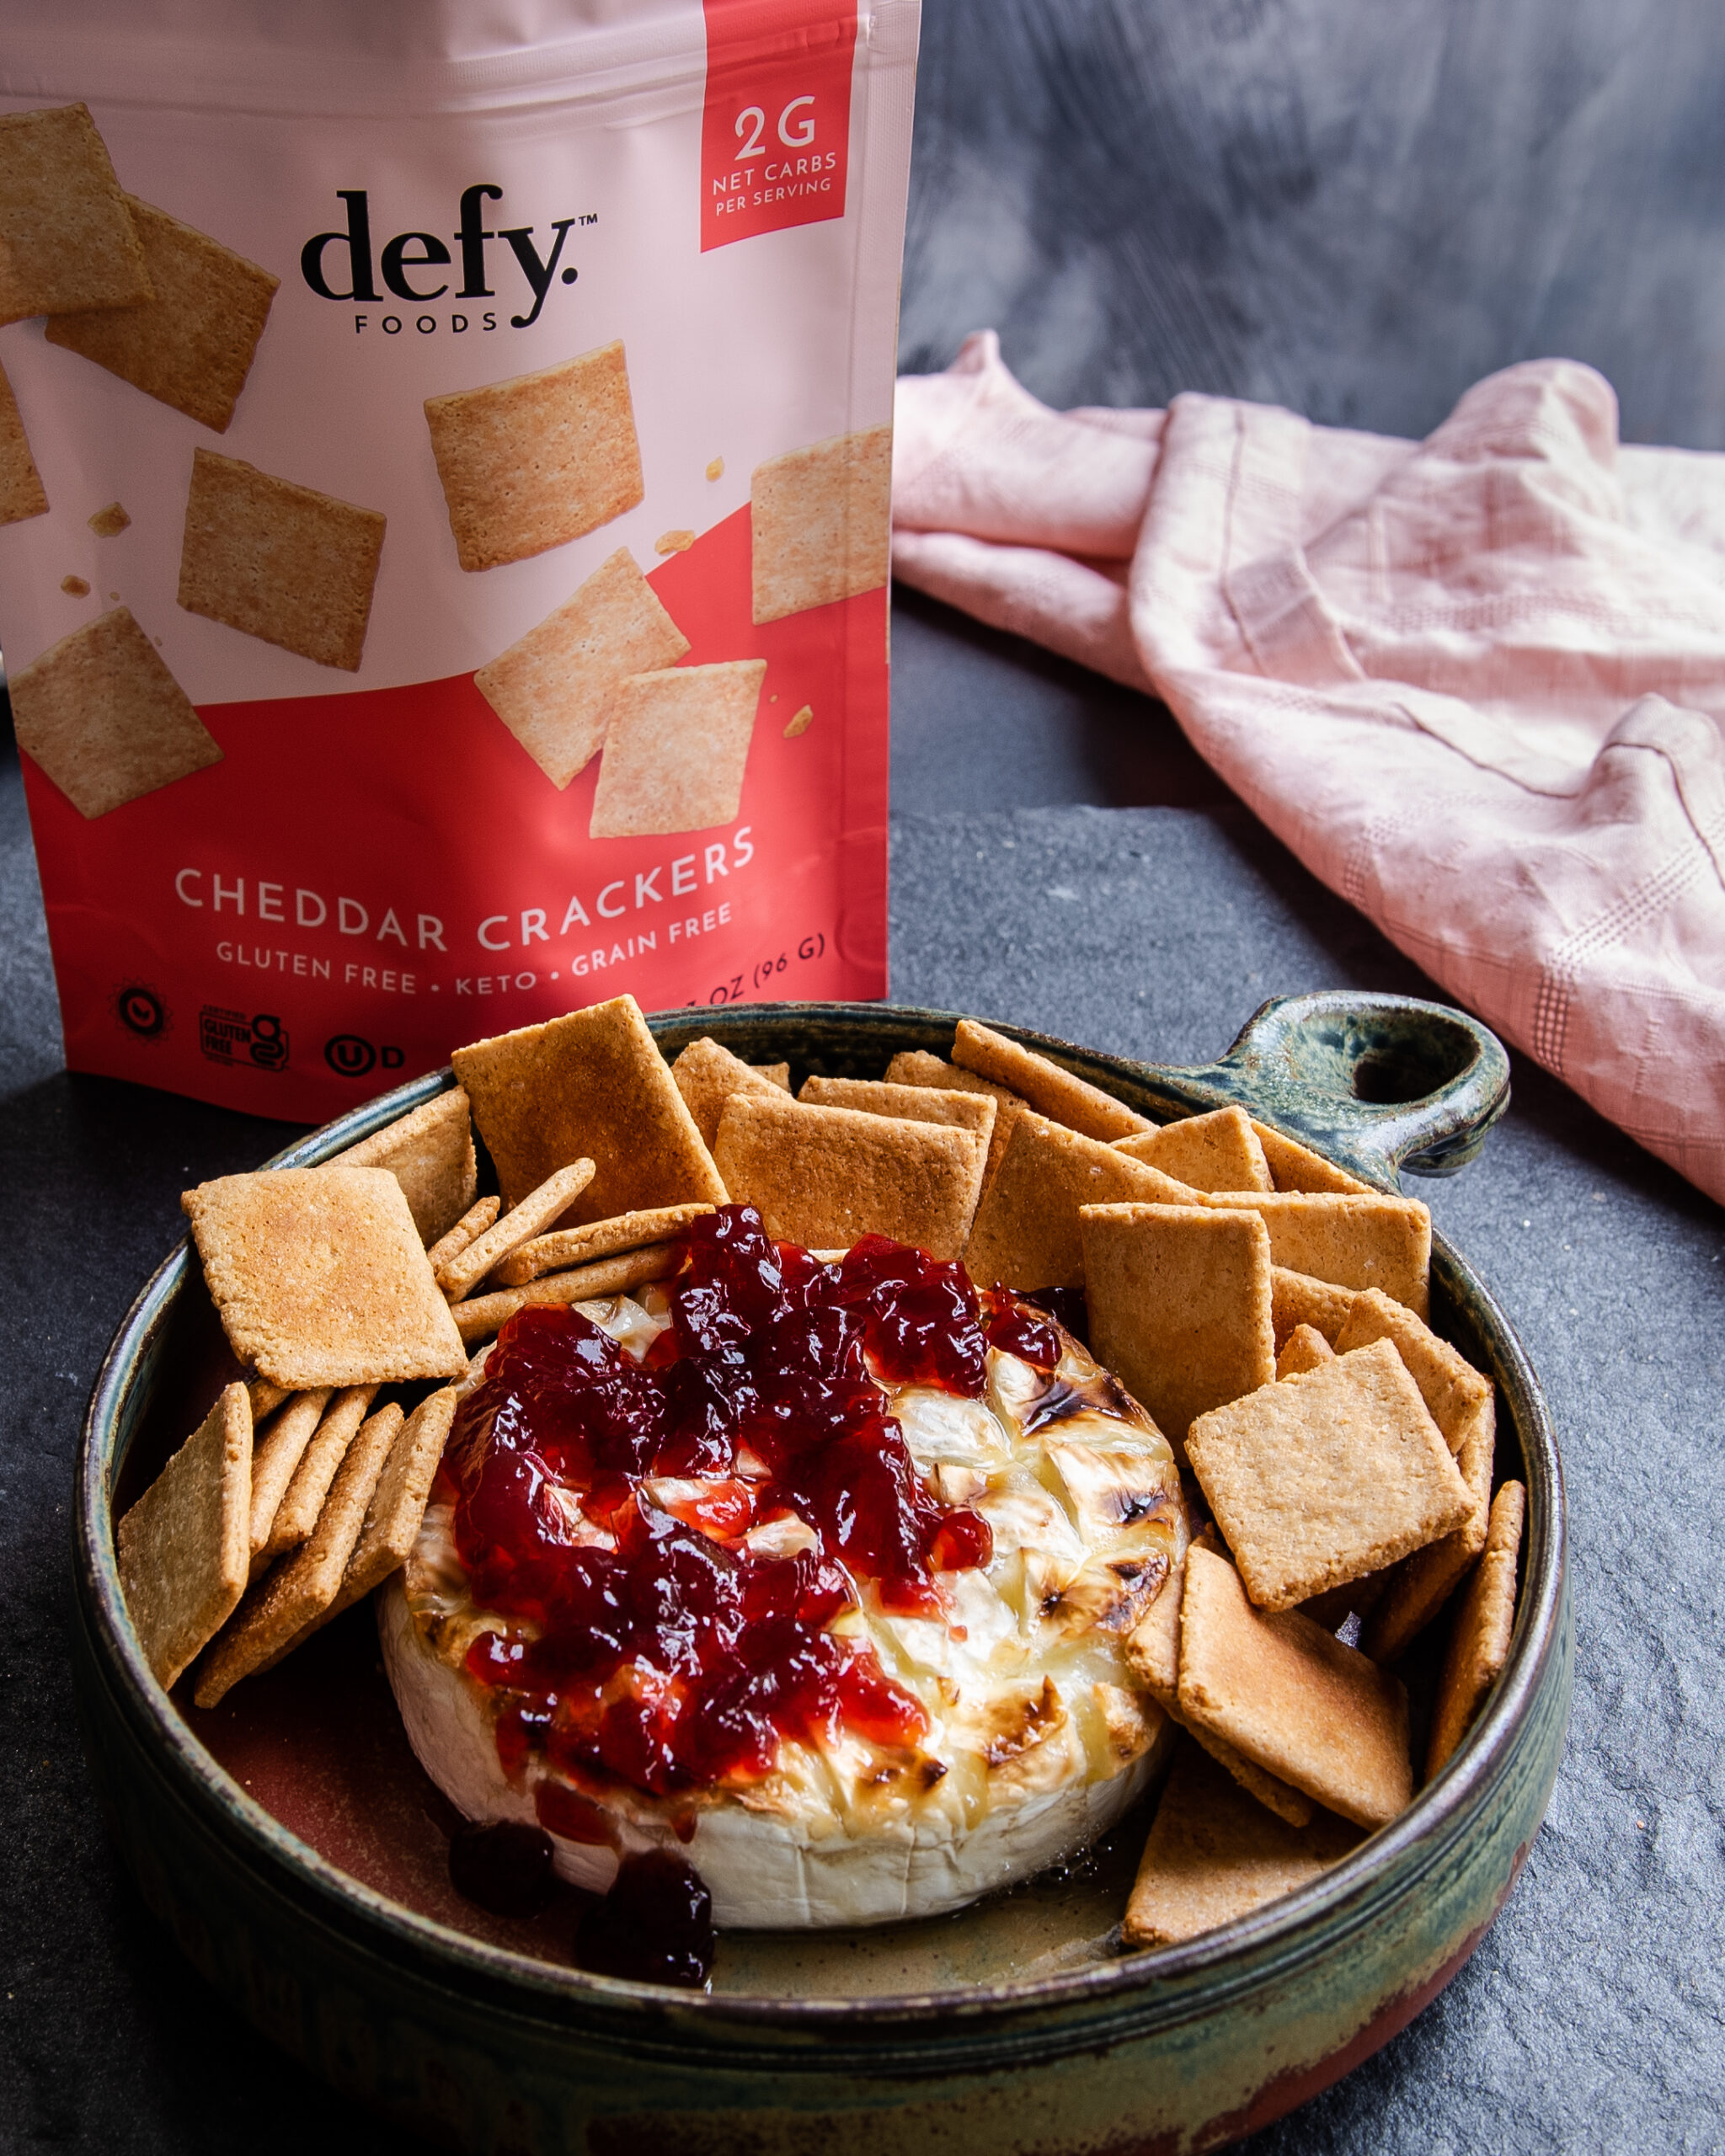 keto baked brie and defy crackers